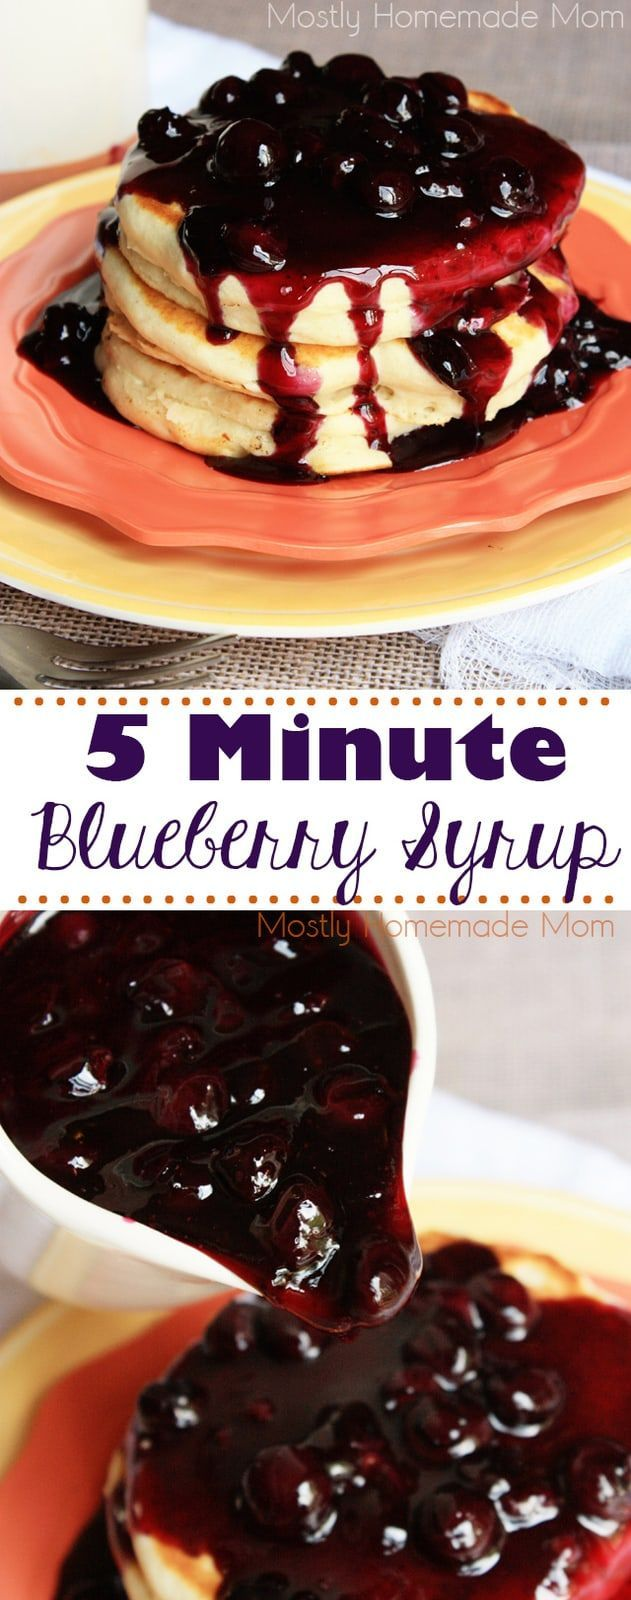 5 Minute Homemade Blueberry Syrup is super easy with one pint of blueberries and pantry staple ingredients! Perfect over pancakes, waffles, or vanilla ice cream!